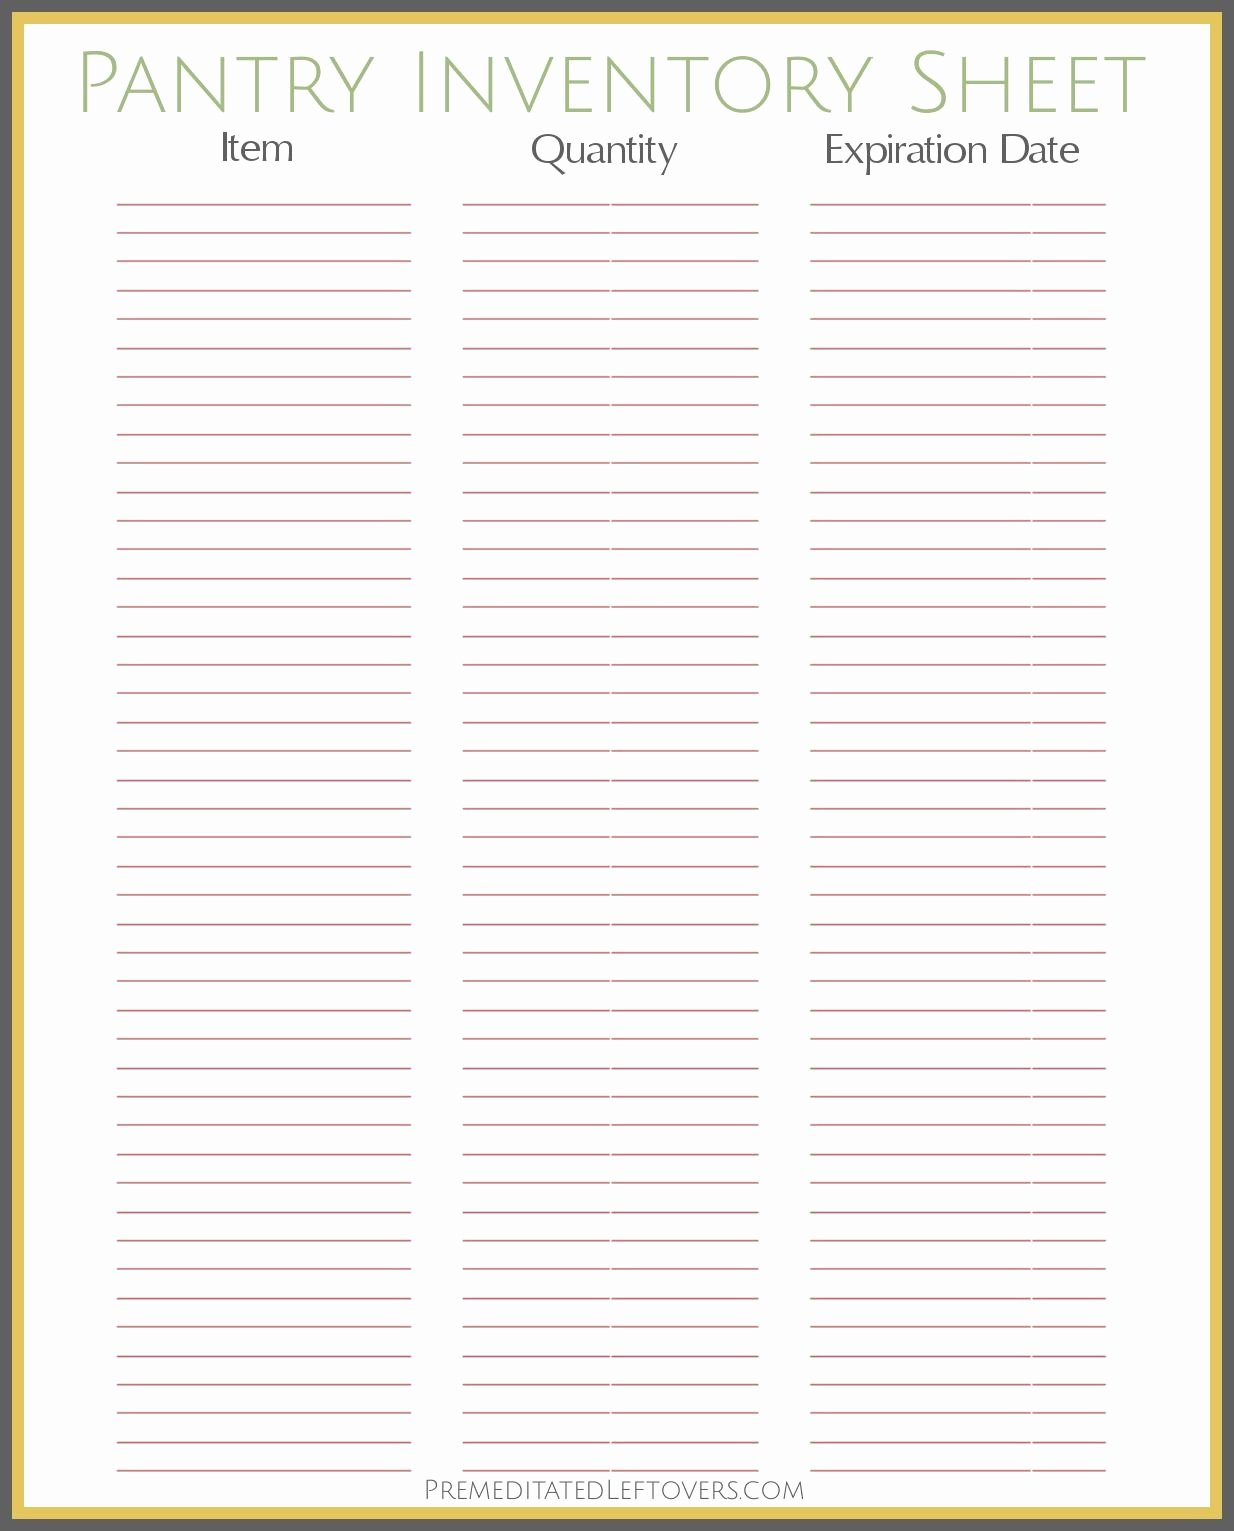 Free Printable Inventory Sheets Beautiful Free Printable Pantry Inventory Sheet …